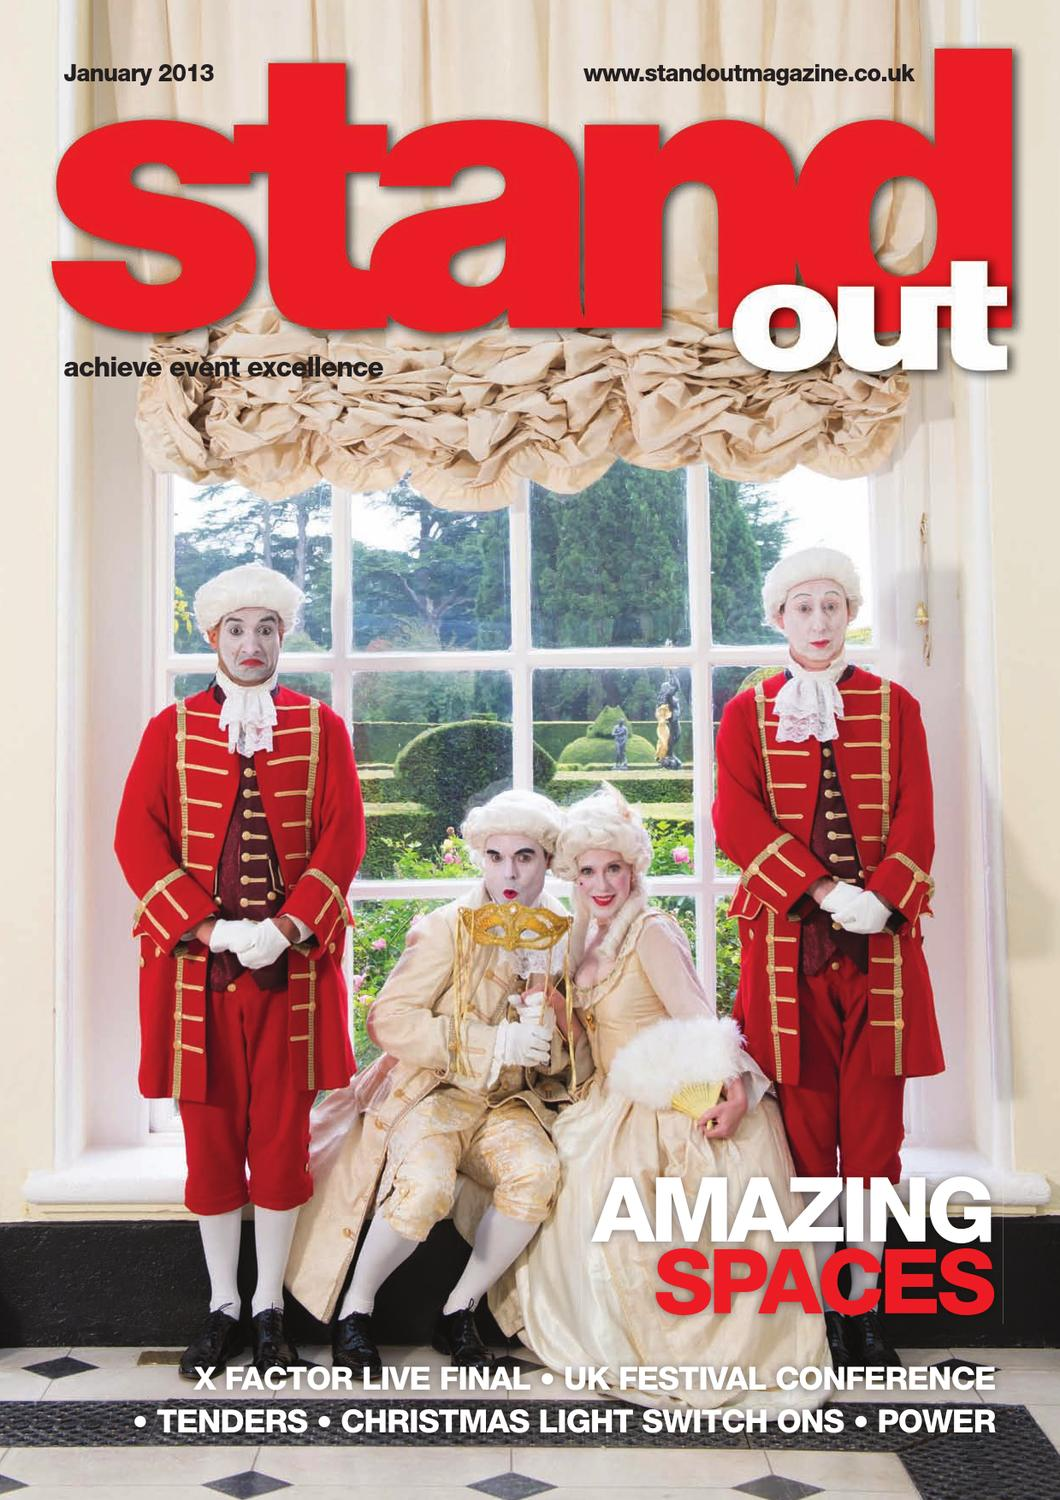 Stand Out Magazine January 2013 Issue by CIM Online LTD - issuu